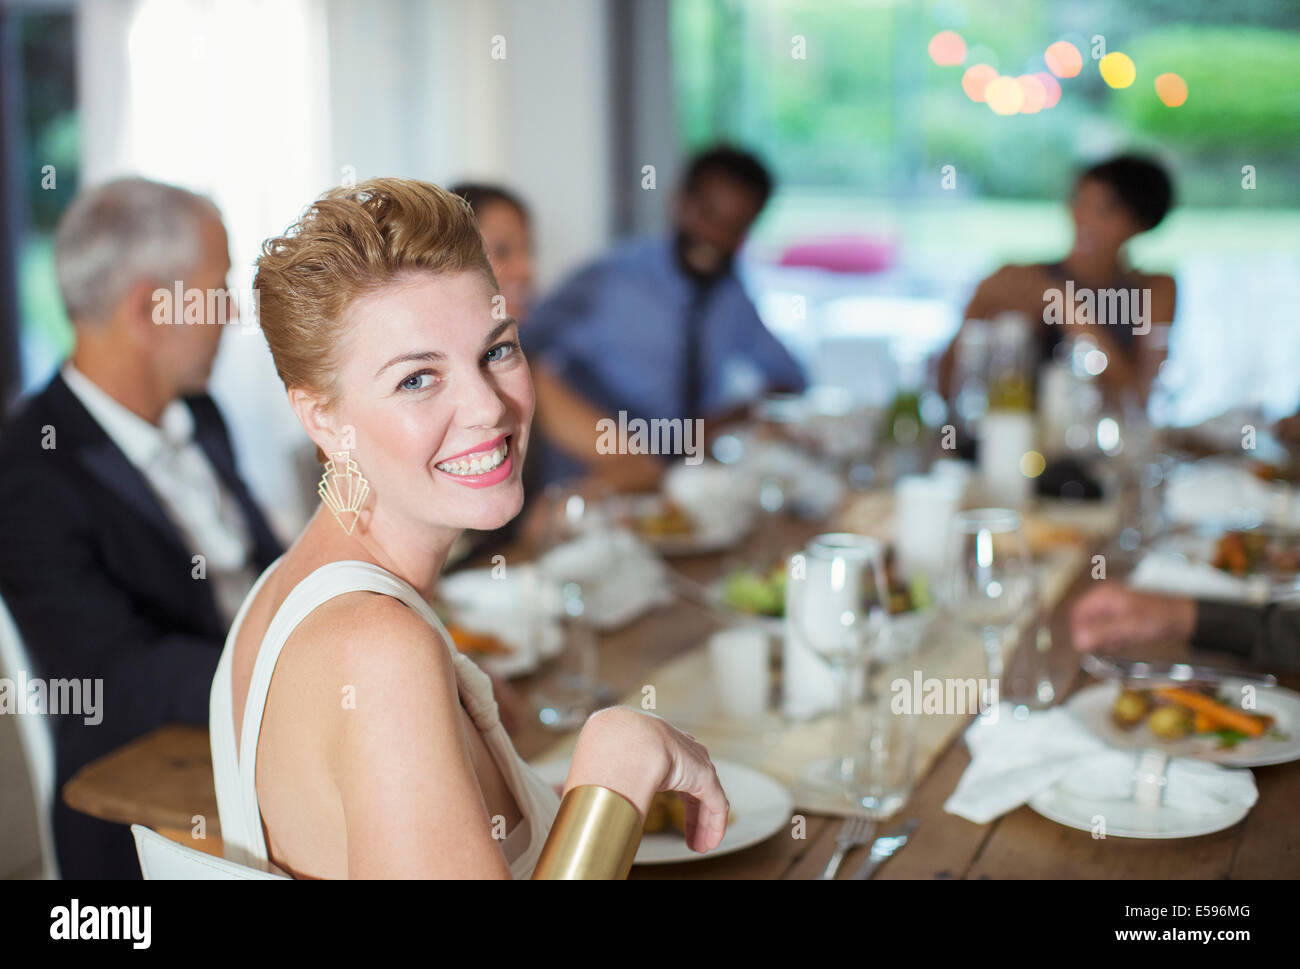 Woman smiling at dinner party Photo Stock